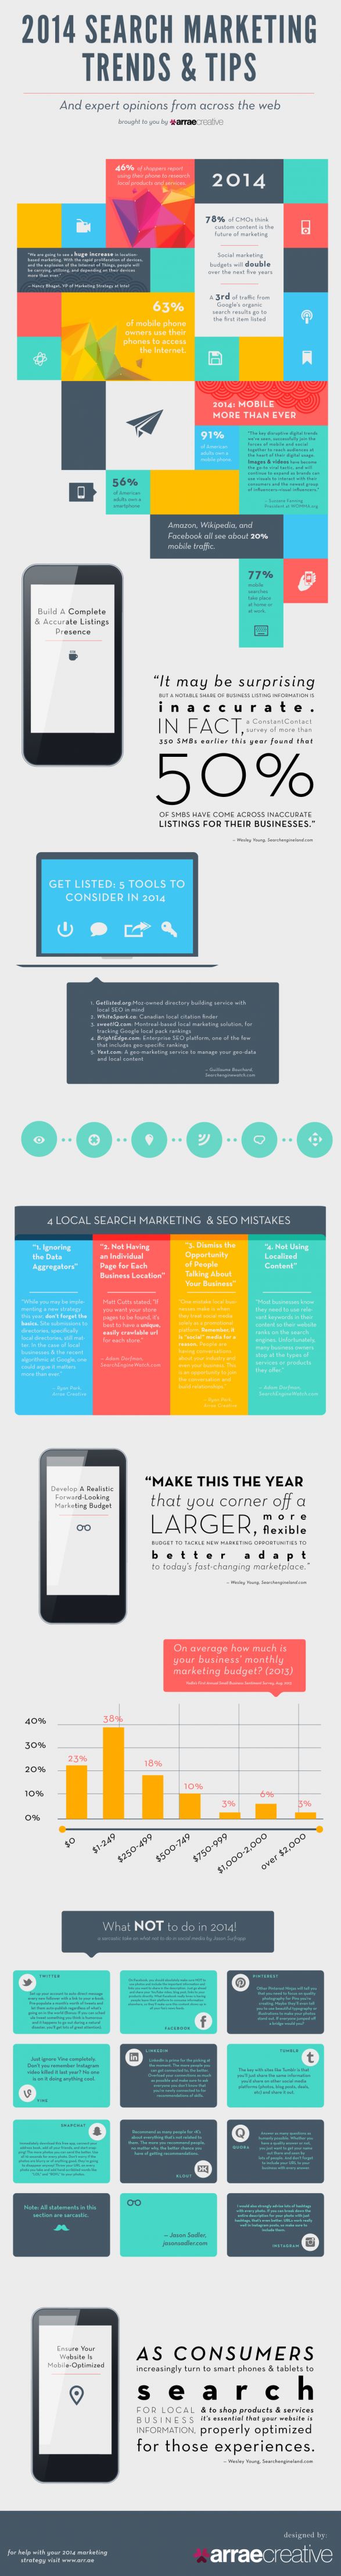 2014 Online Marketing Trends & Tips